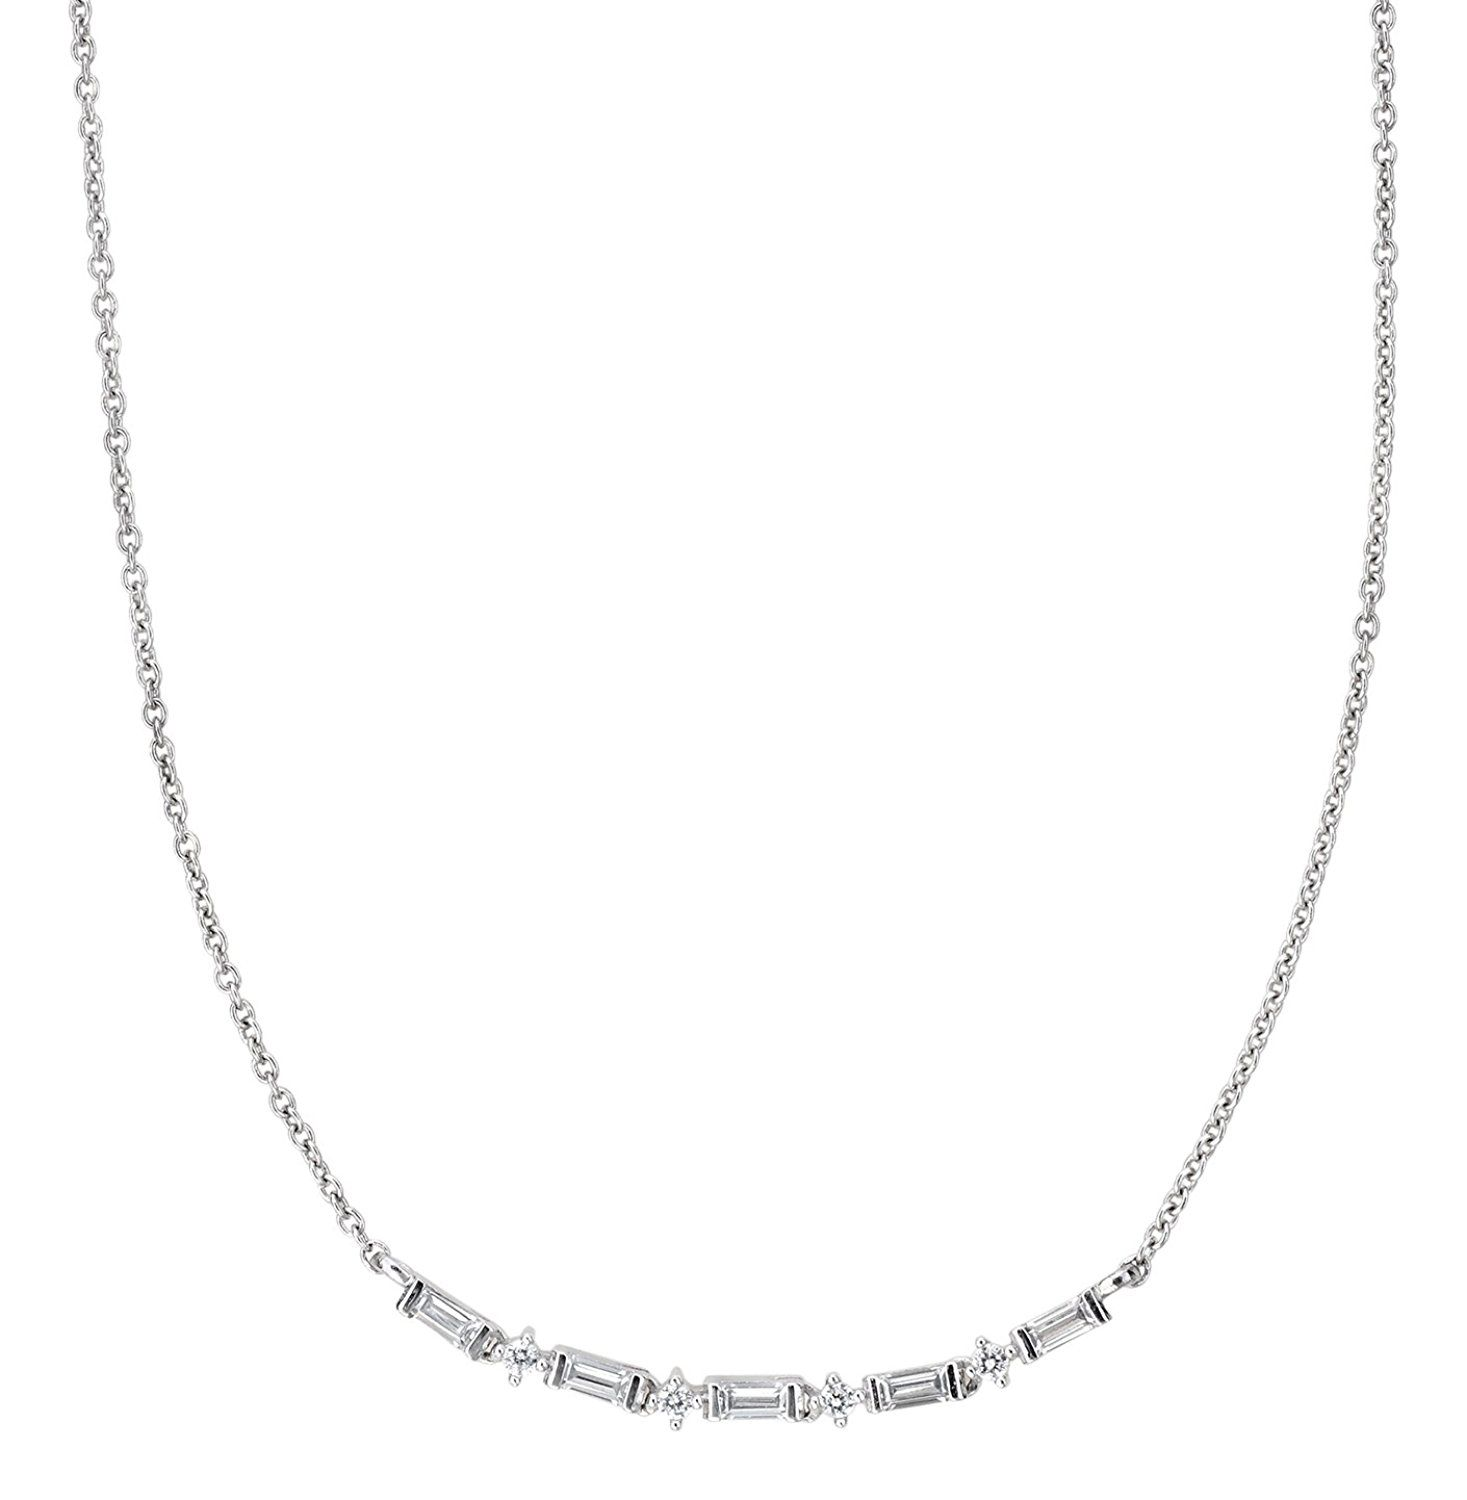 0b42261b2 CRISLU Women's 925 Sterling Silver Baguette Clear Cubic Zirconia Necklace  of Length 40.64-45.73cm